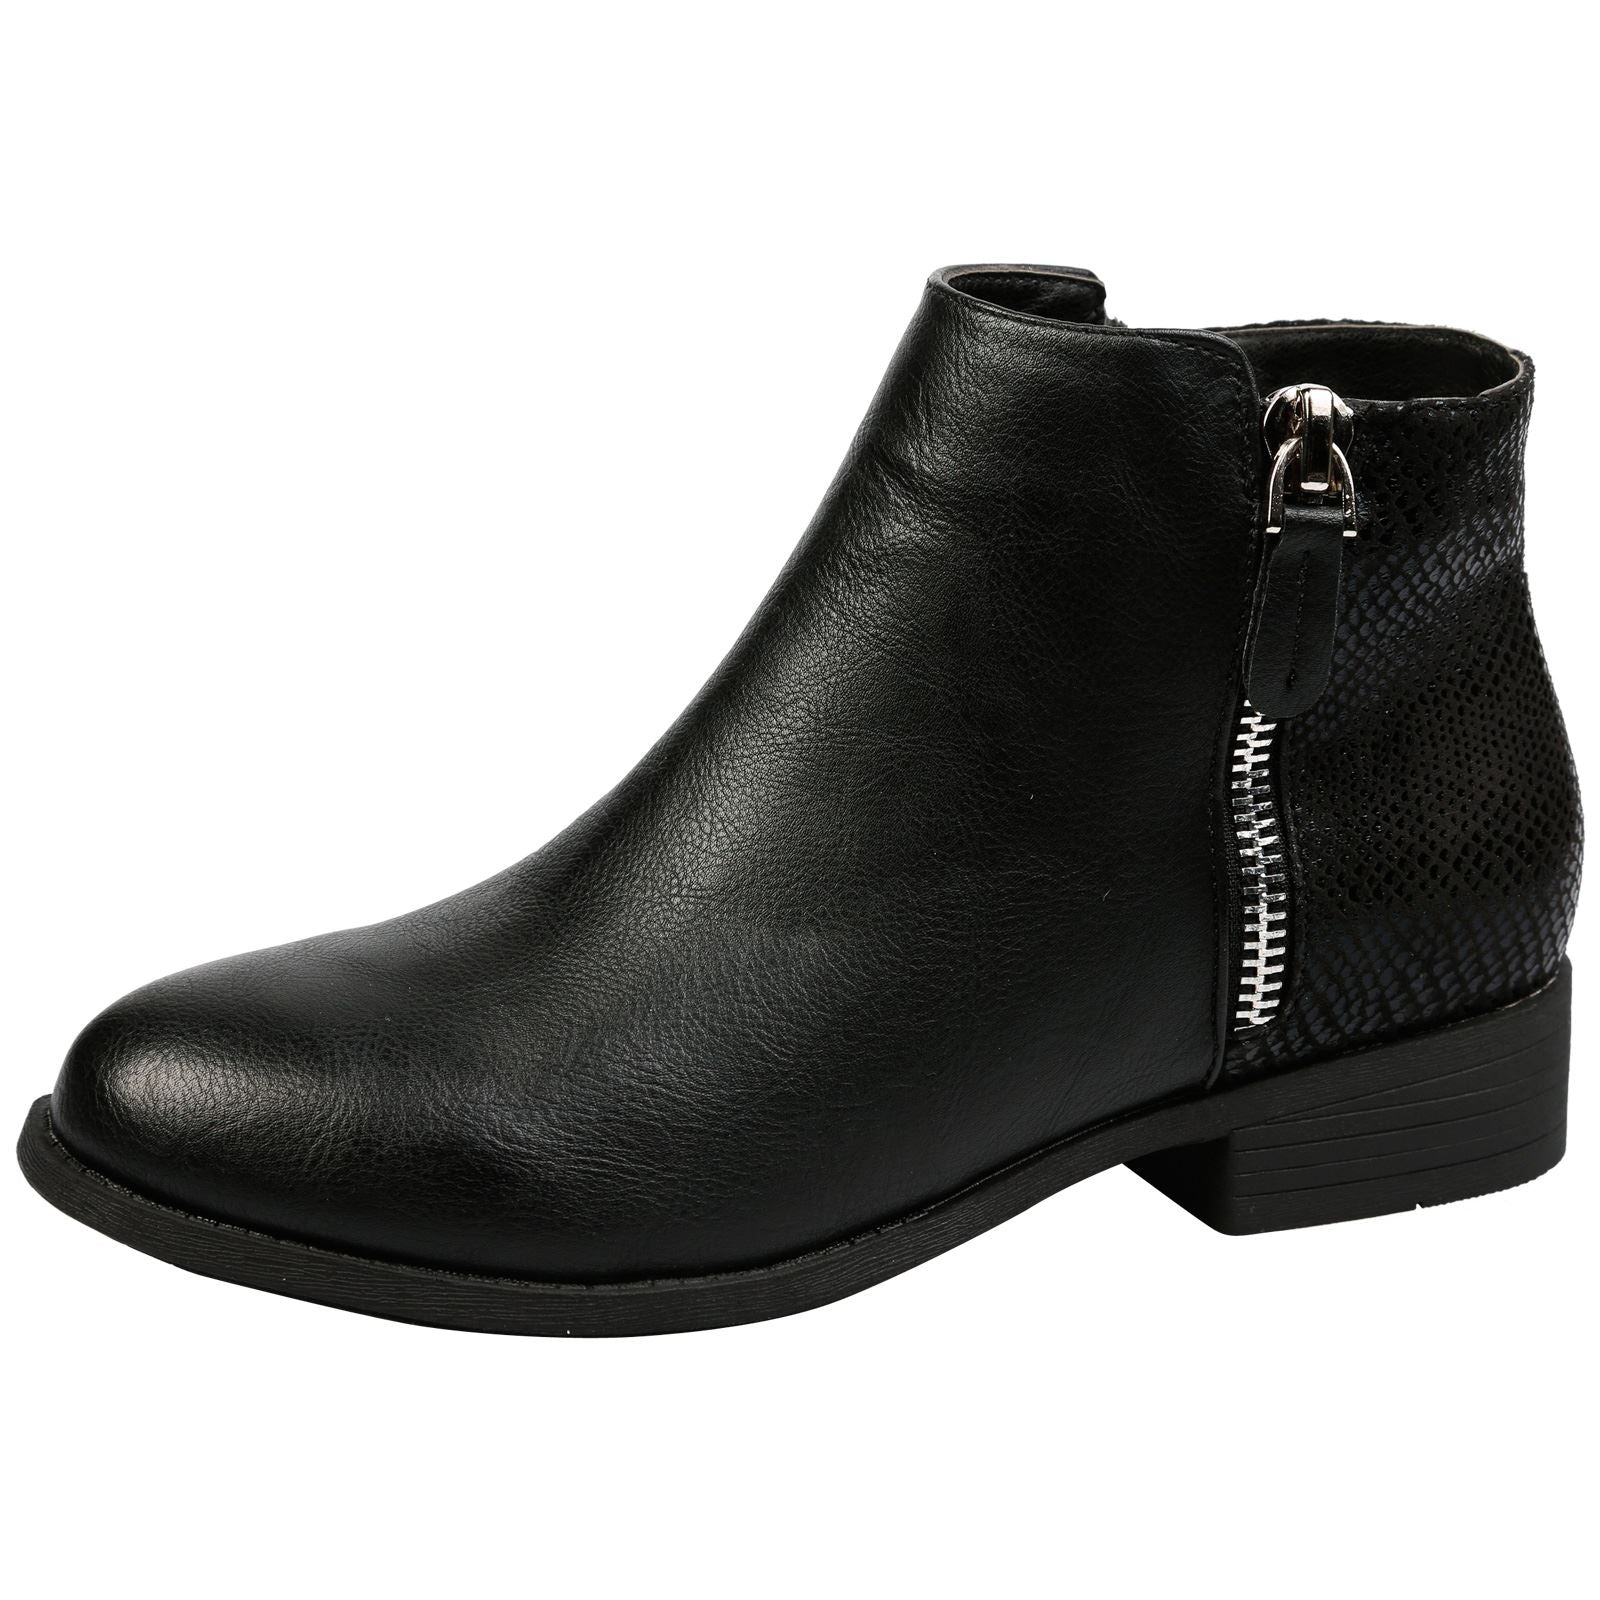 Evangelista Two Tone Zip Detail Ankle Boots in Black Faux Leather